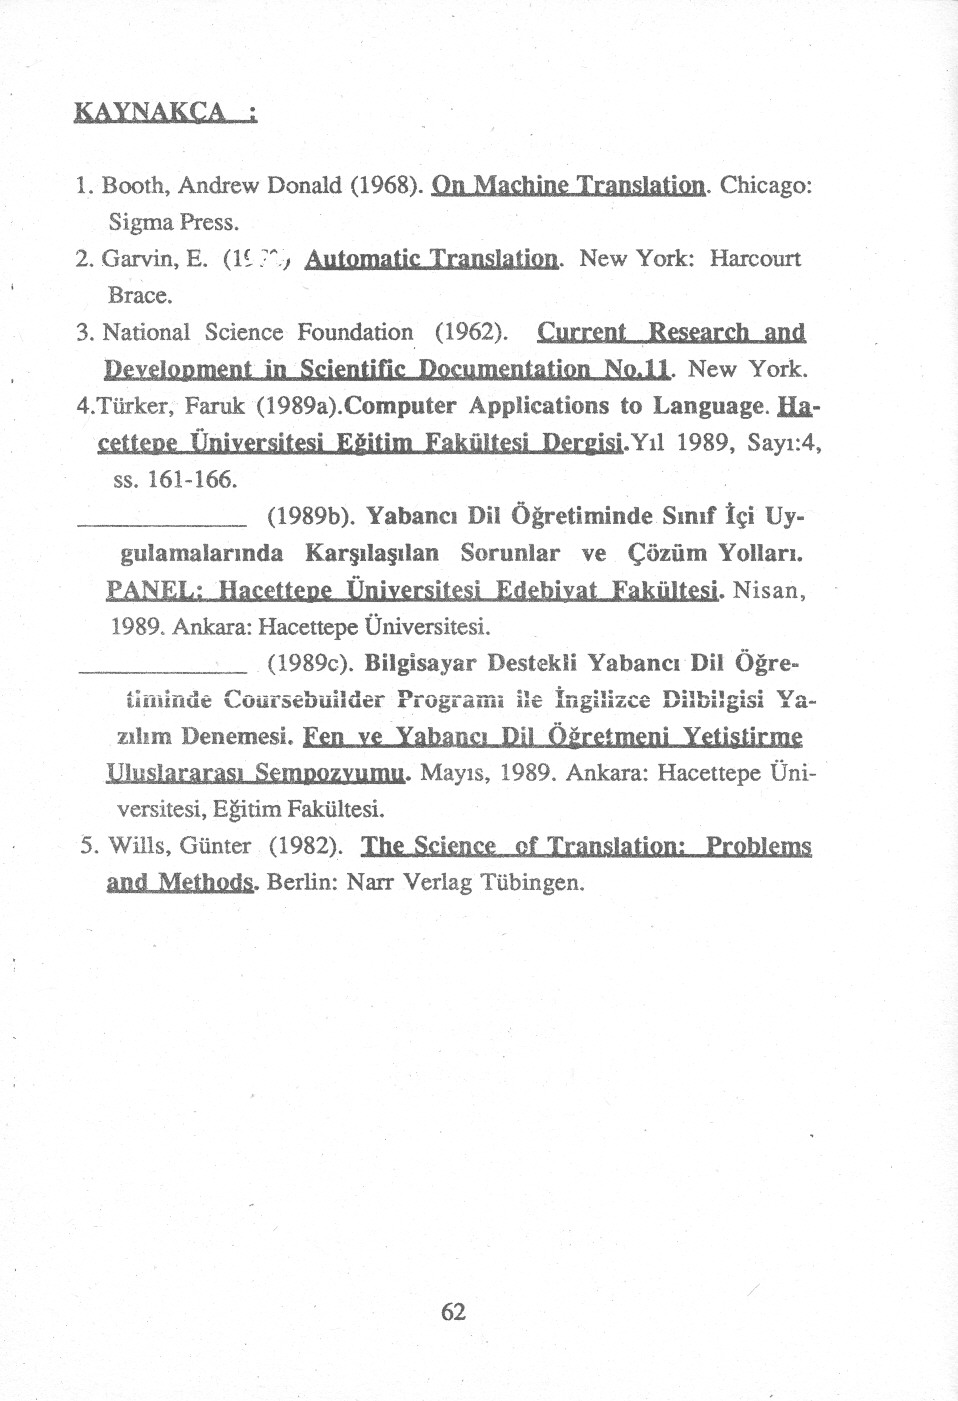 "KAYNAKÇA : 1. Booth, Andrew Donald (1968). On Machine Translation. Chicago: Sigma Press. 2. Garvin, E. (1~."";"".jAutomatic Translation. New York: Harcourt Brace. 3. National Science Foundation (1962)."